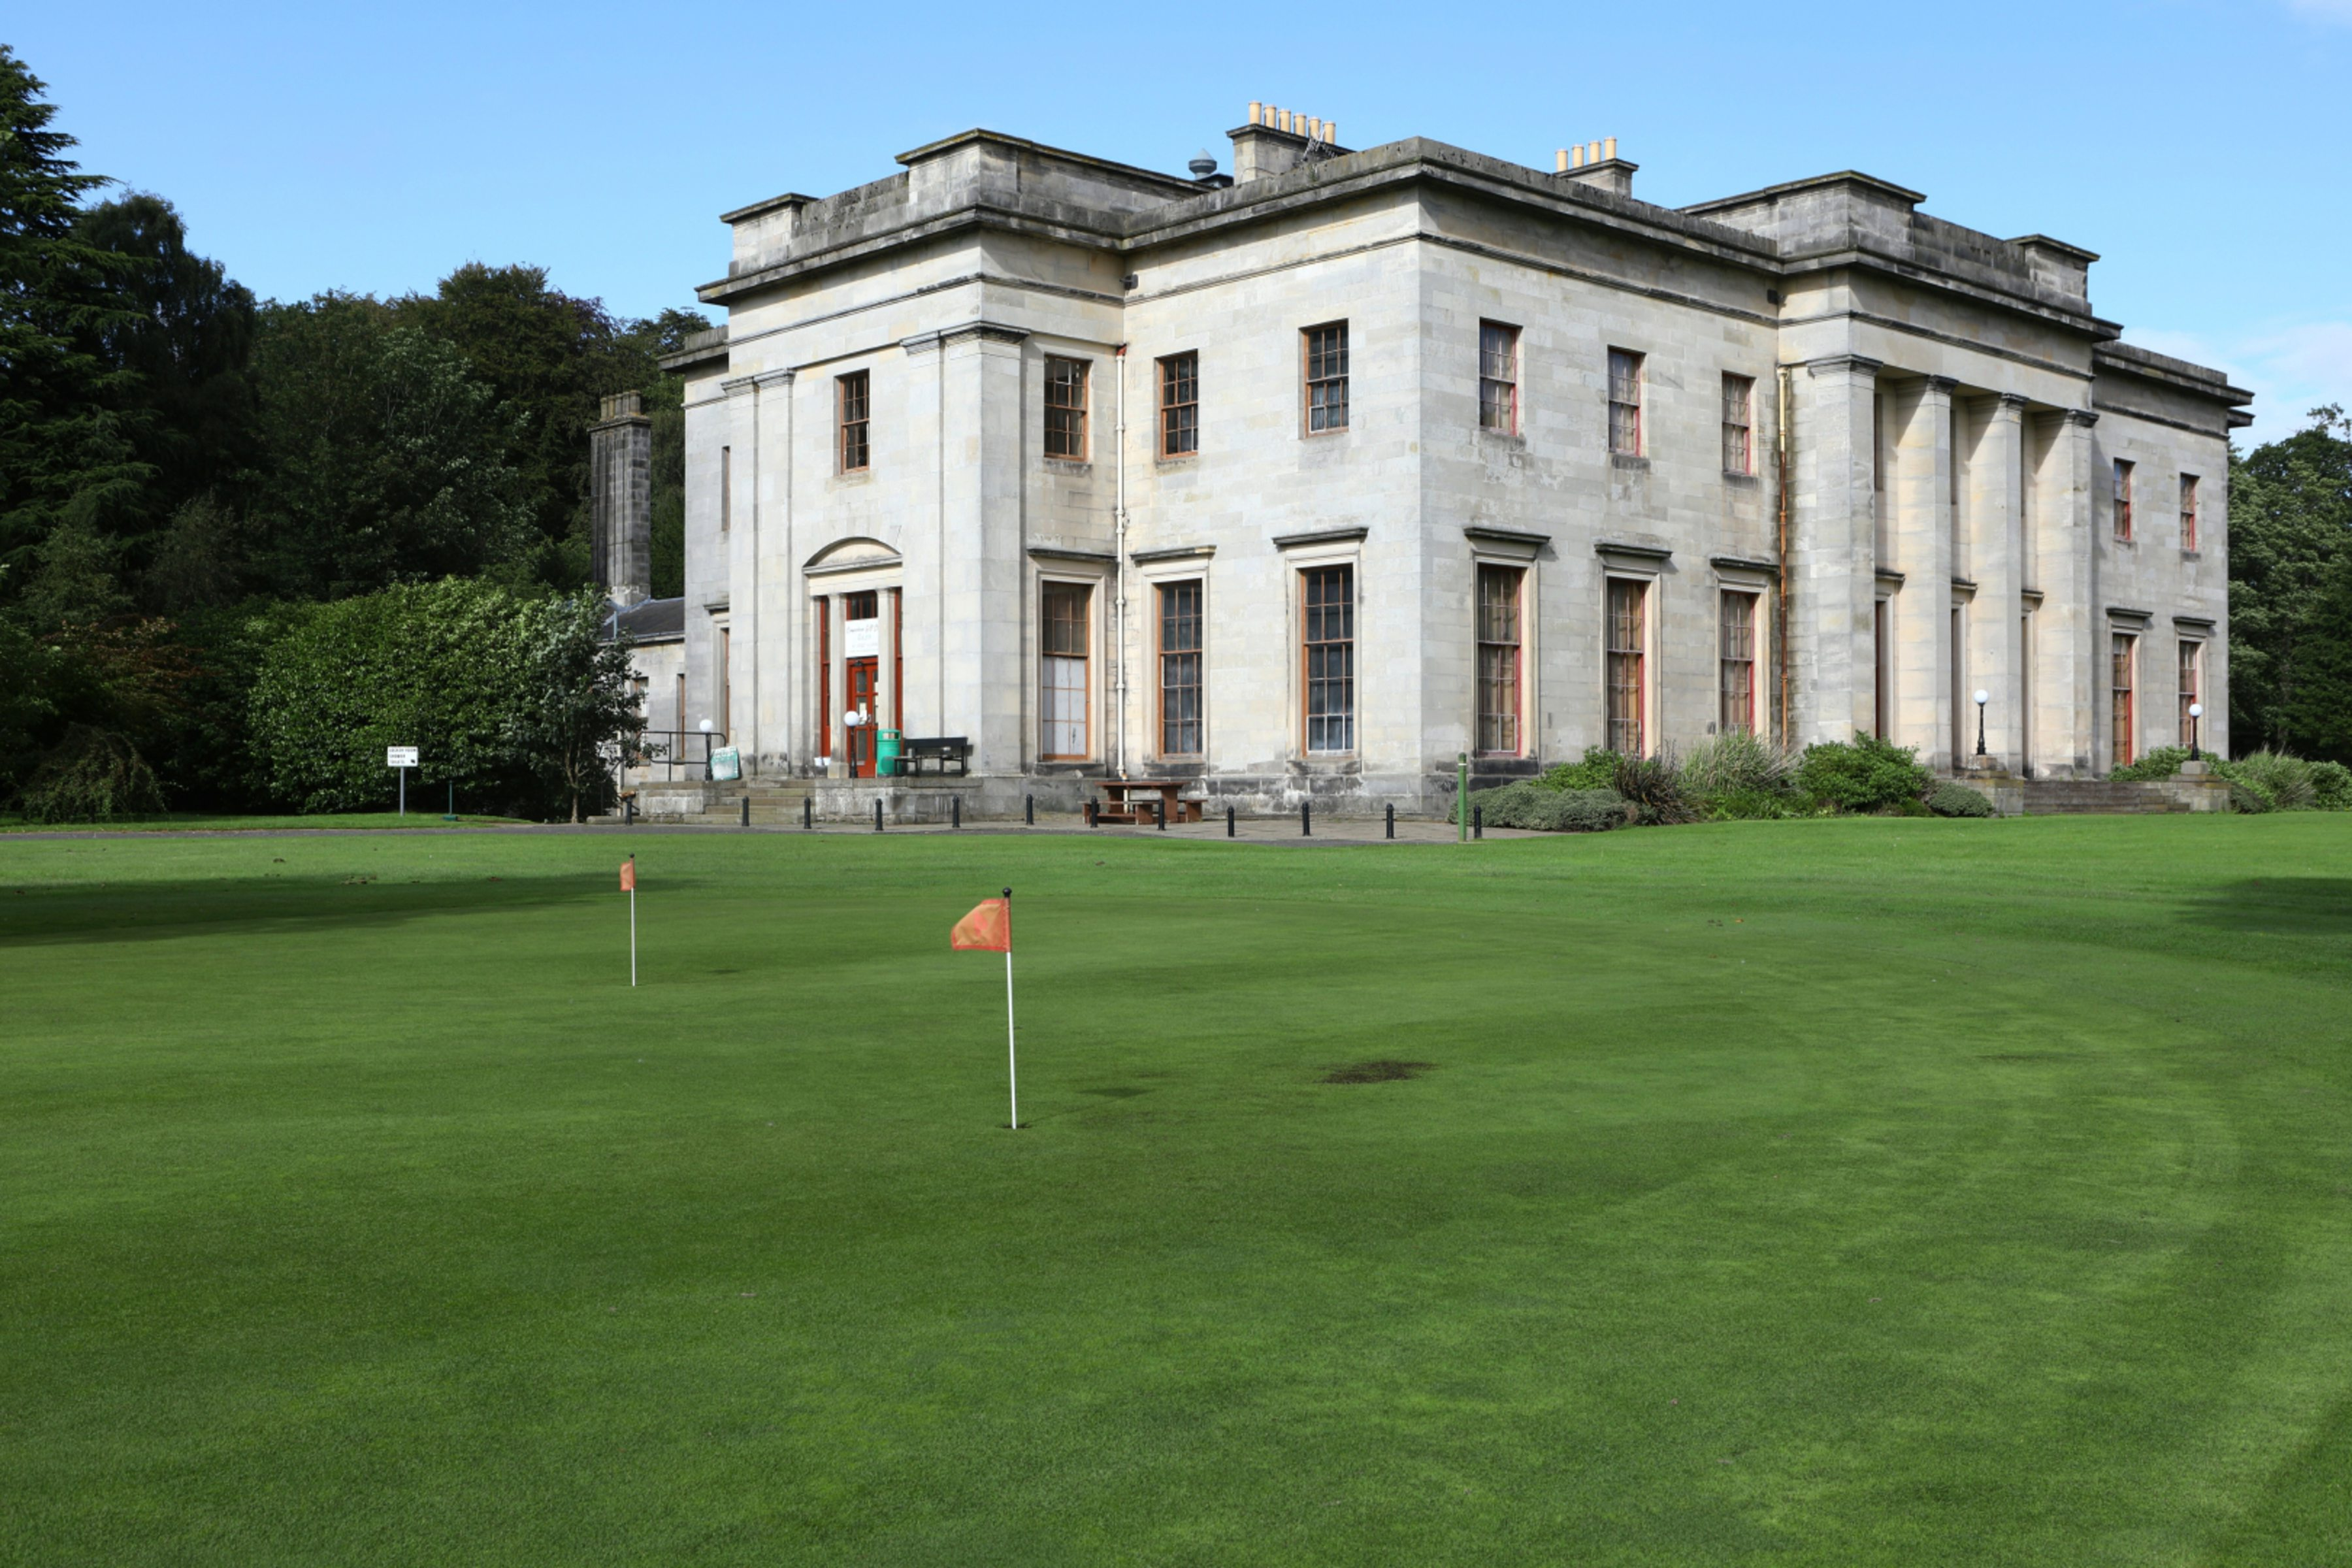 Camperdown Golf Course where Gallacher and Shade started their round in 1975.